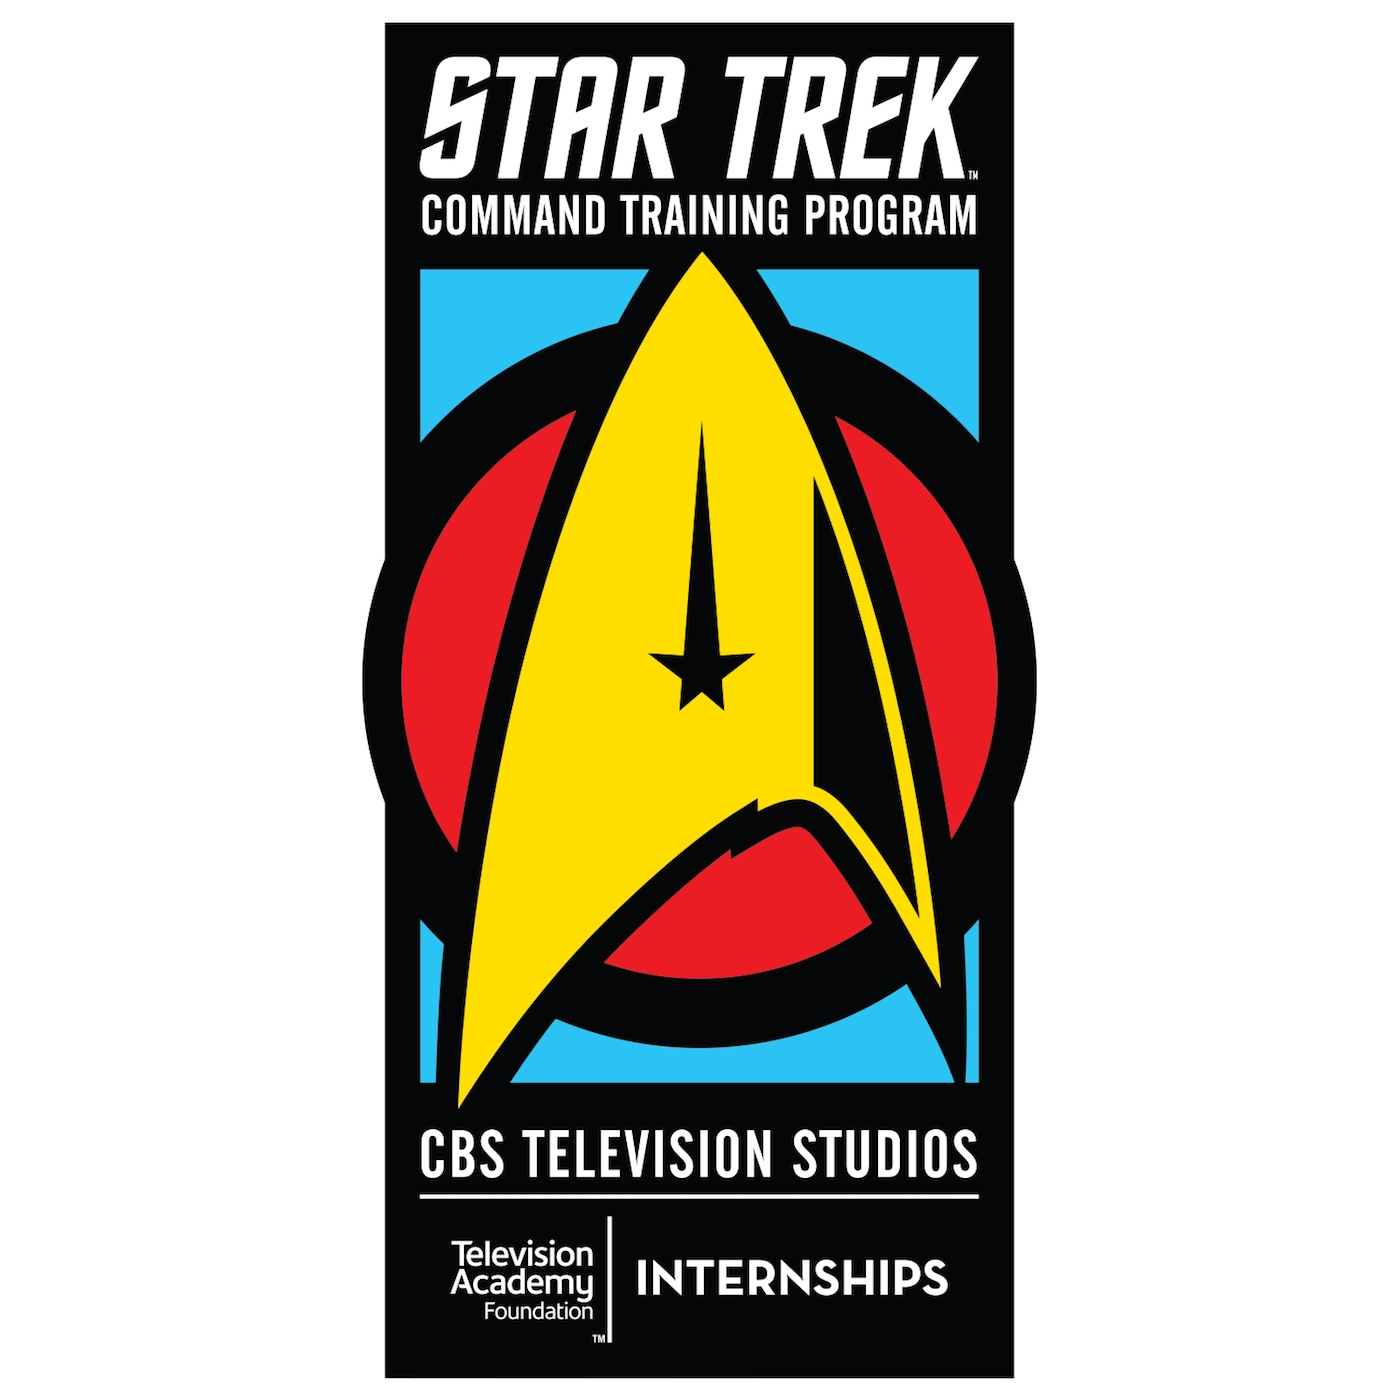 Star Trek Command Training Program internships